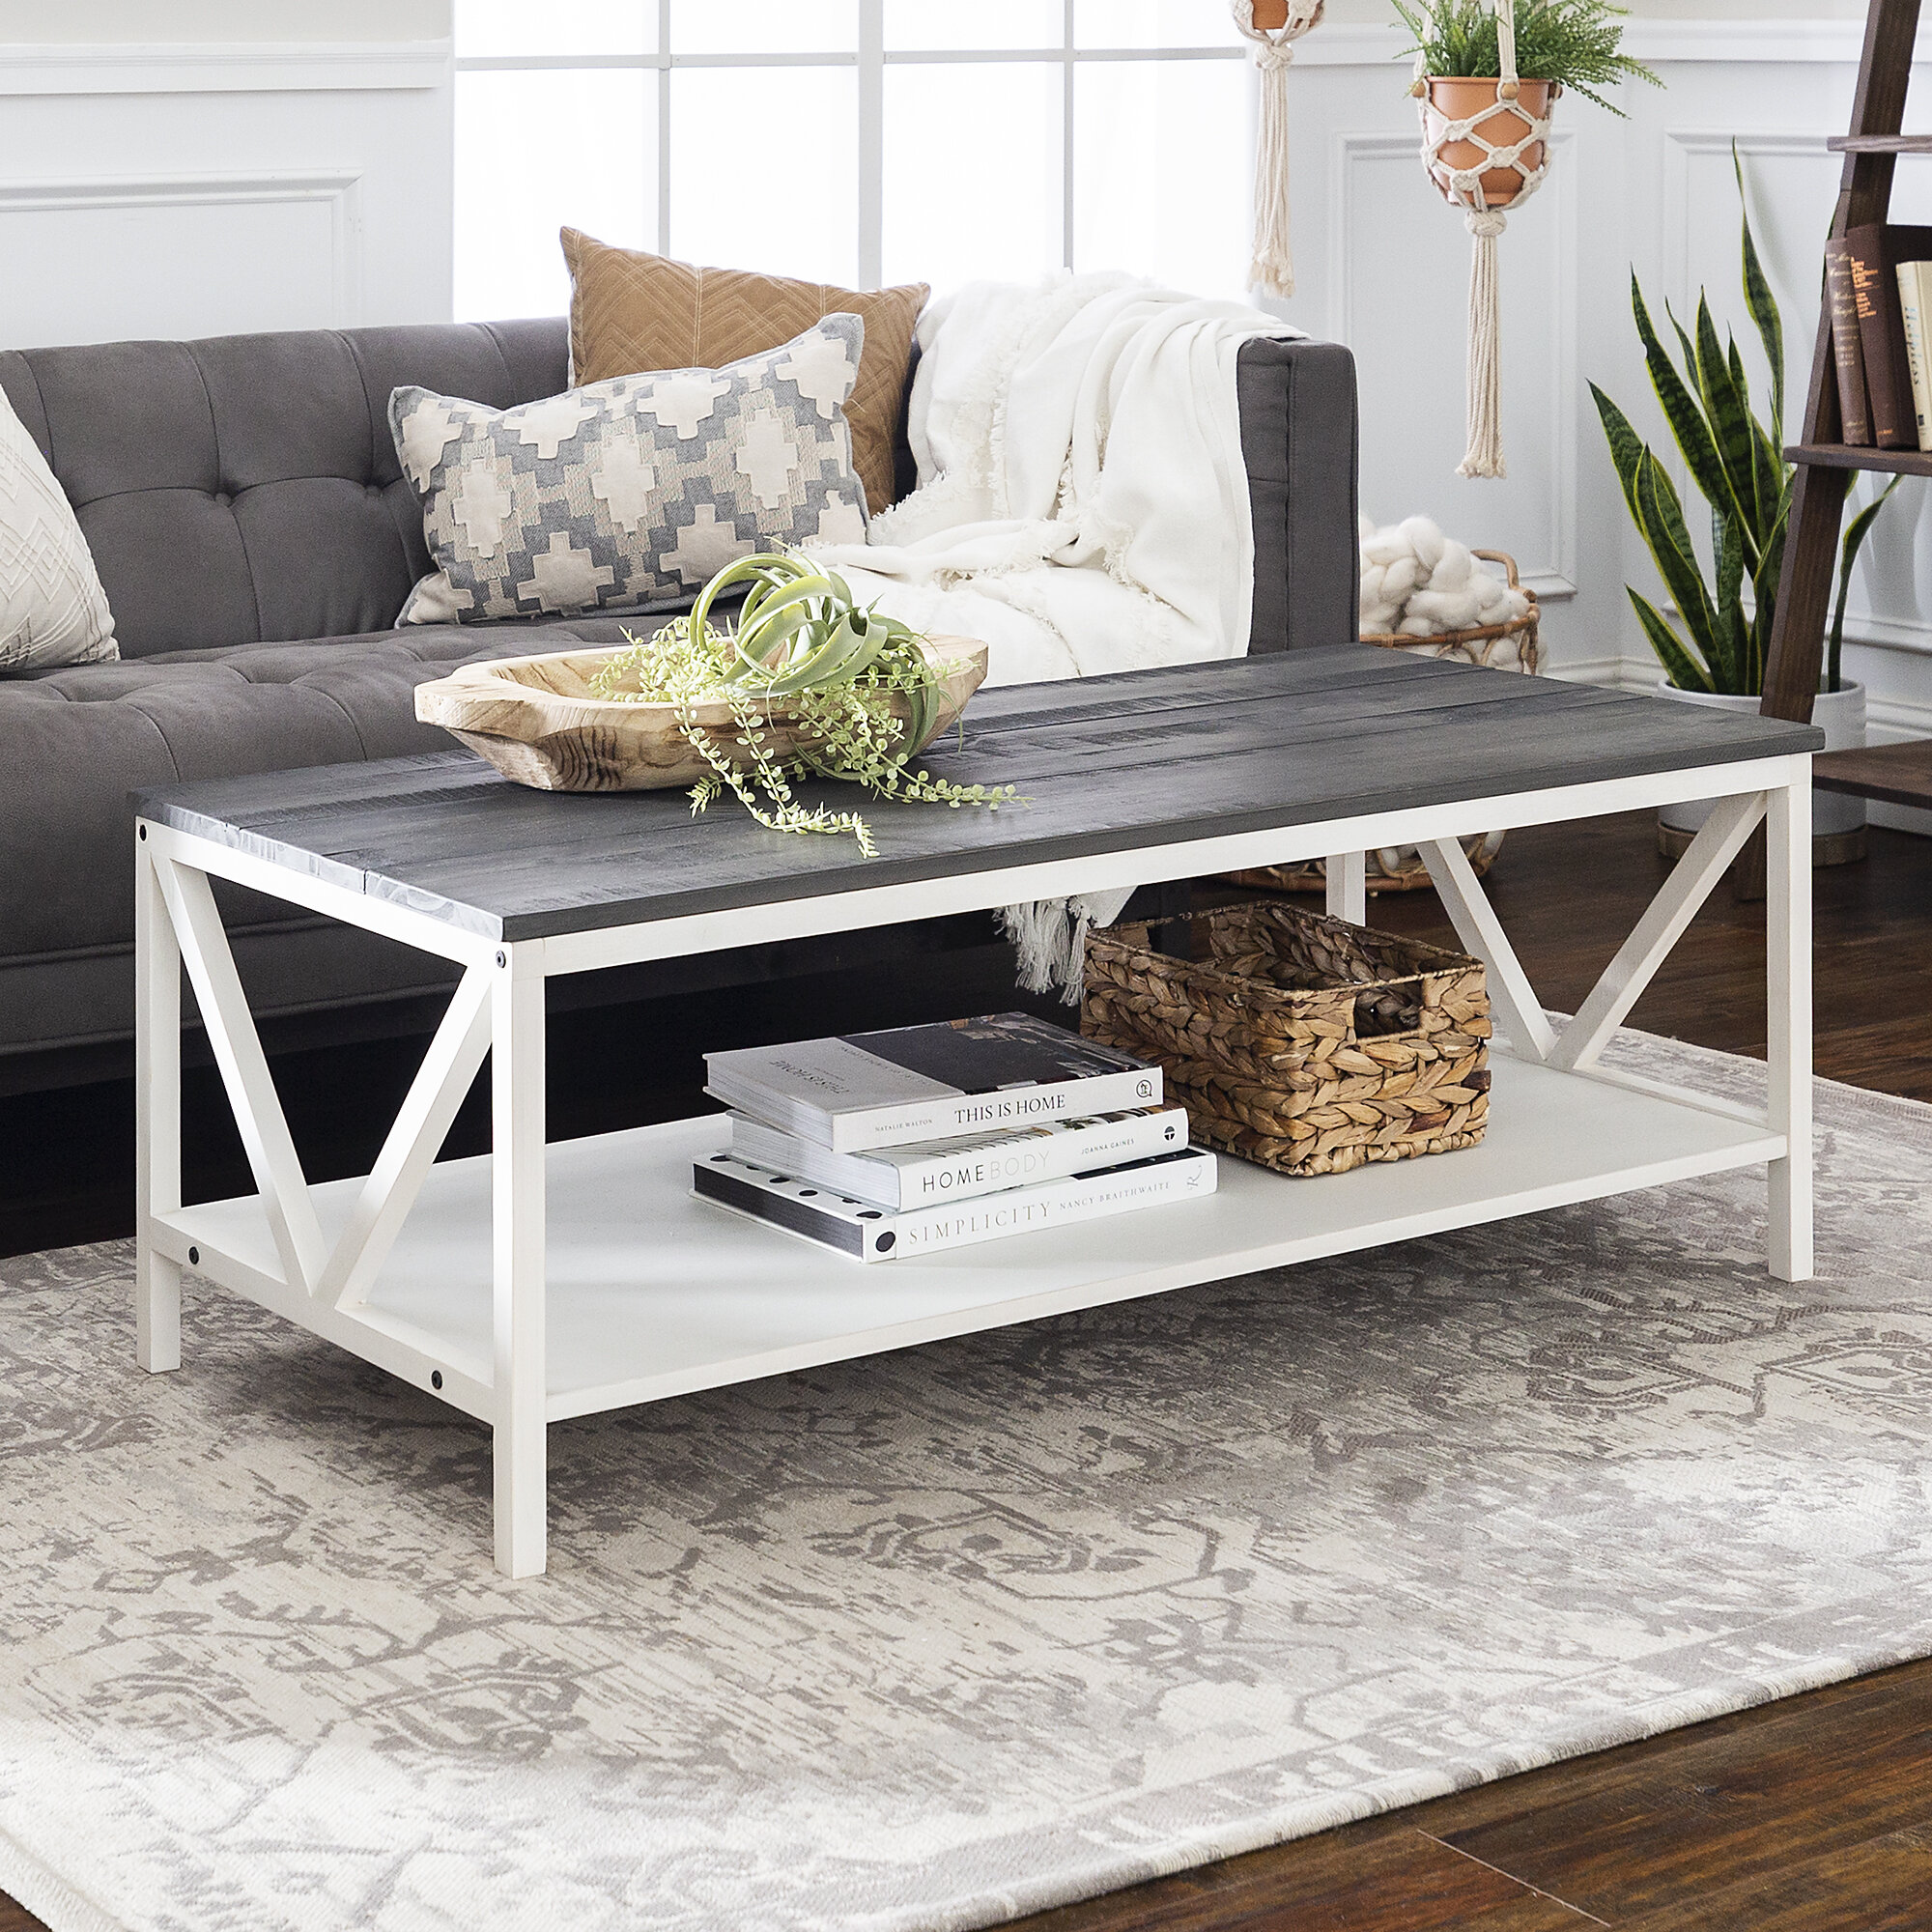 White Coffee Tables Free Shipping Over 35 Wayfair